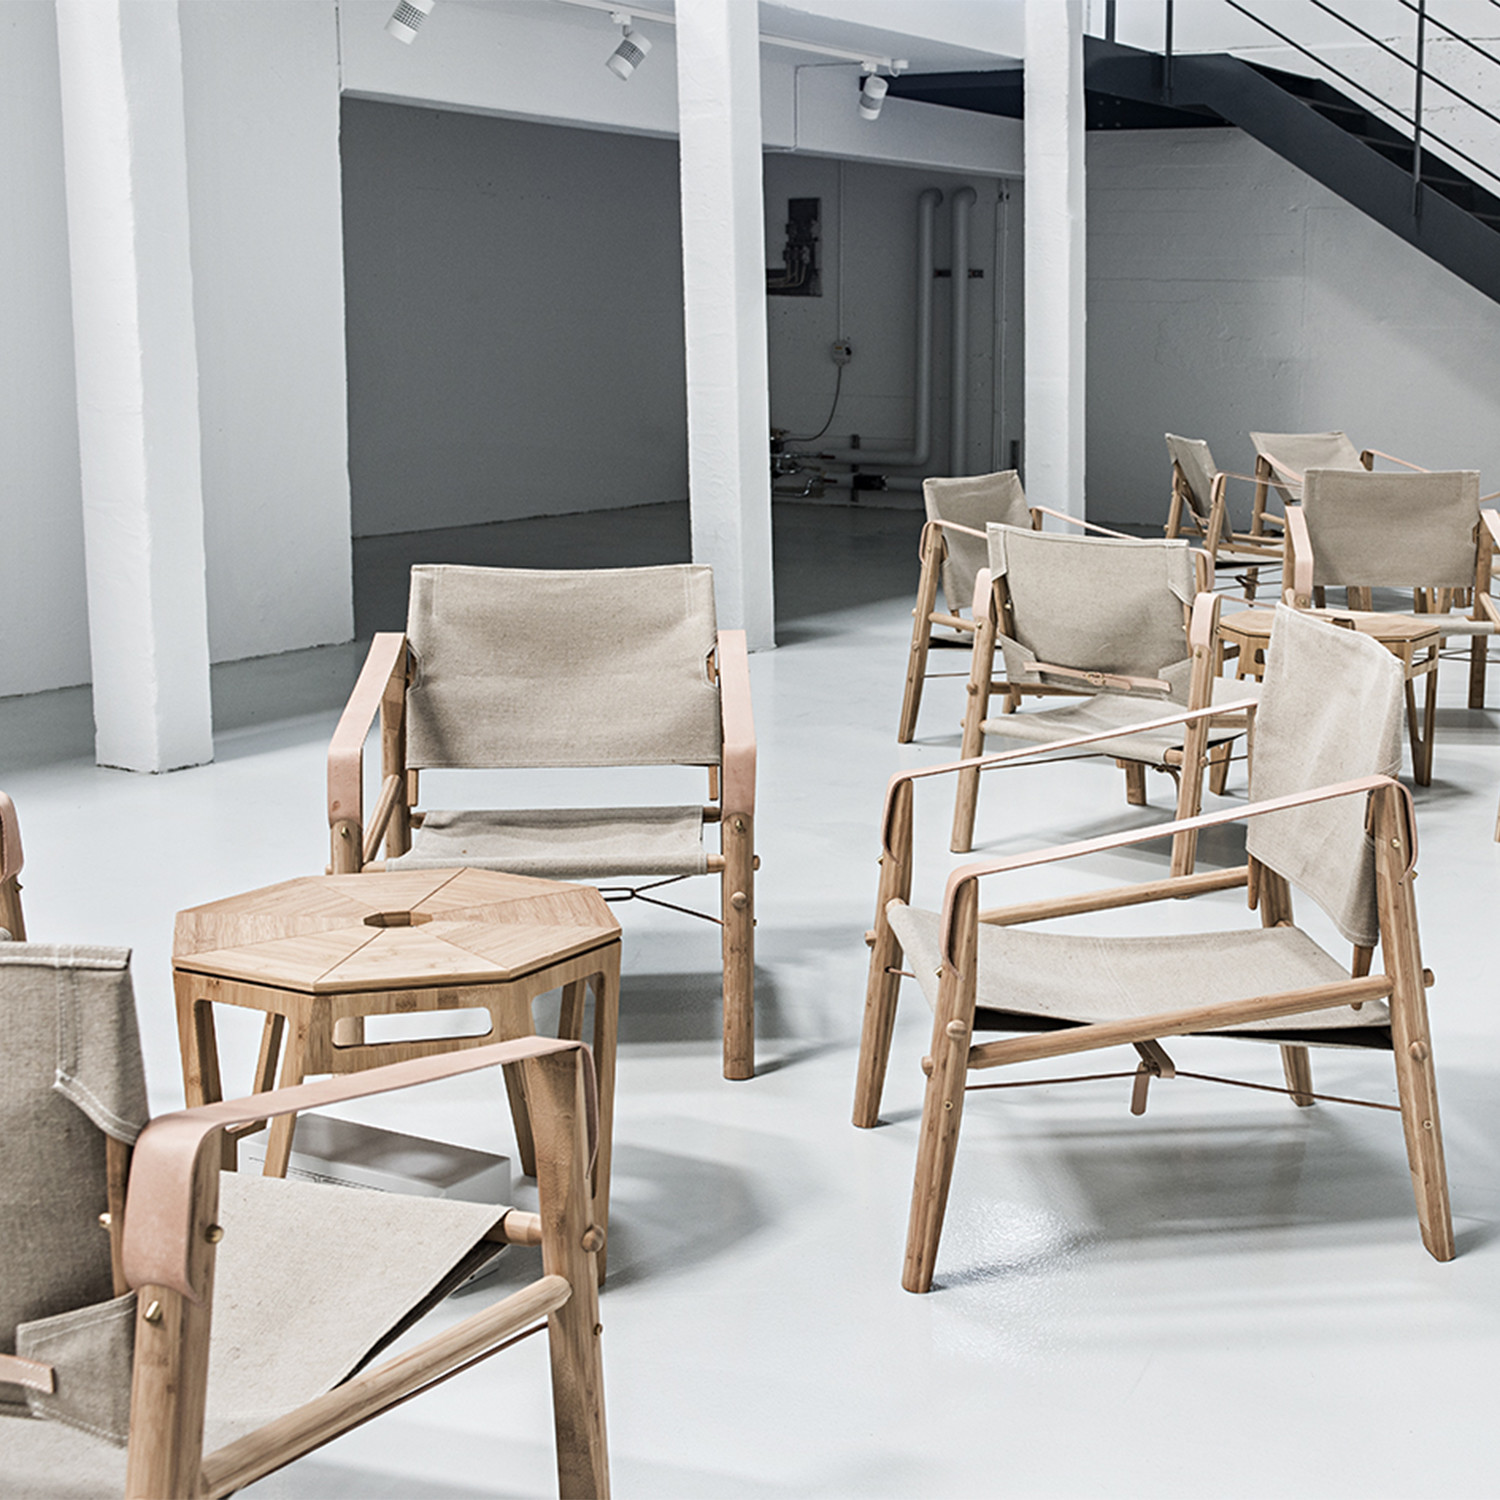 We Do Wood Nomad Chair Natural We Do Wood Touch Of Modern